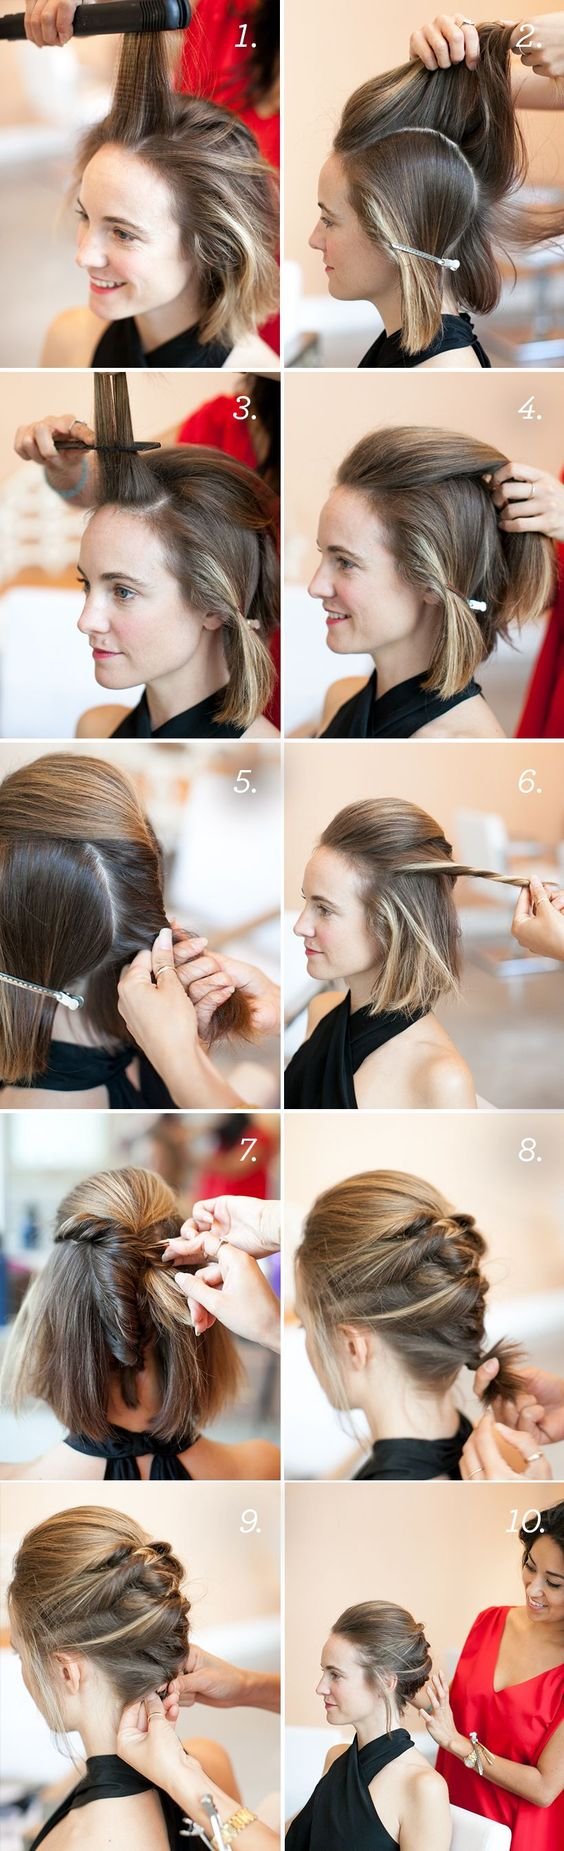 Sophisticated DIY Textured French Twist For Short Hair #hairstyles #ShortHair: